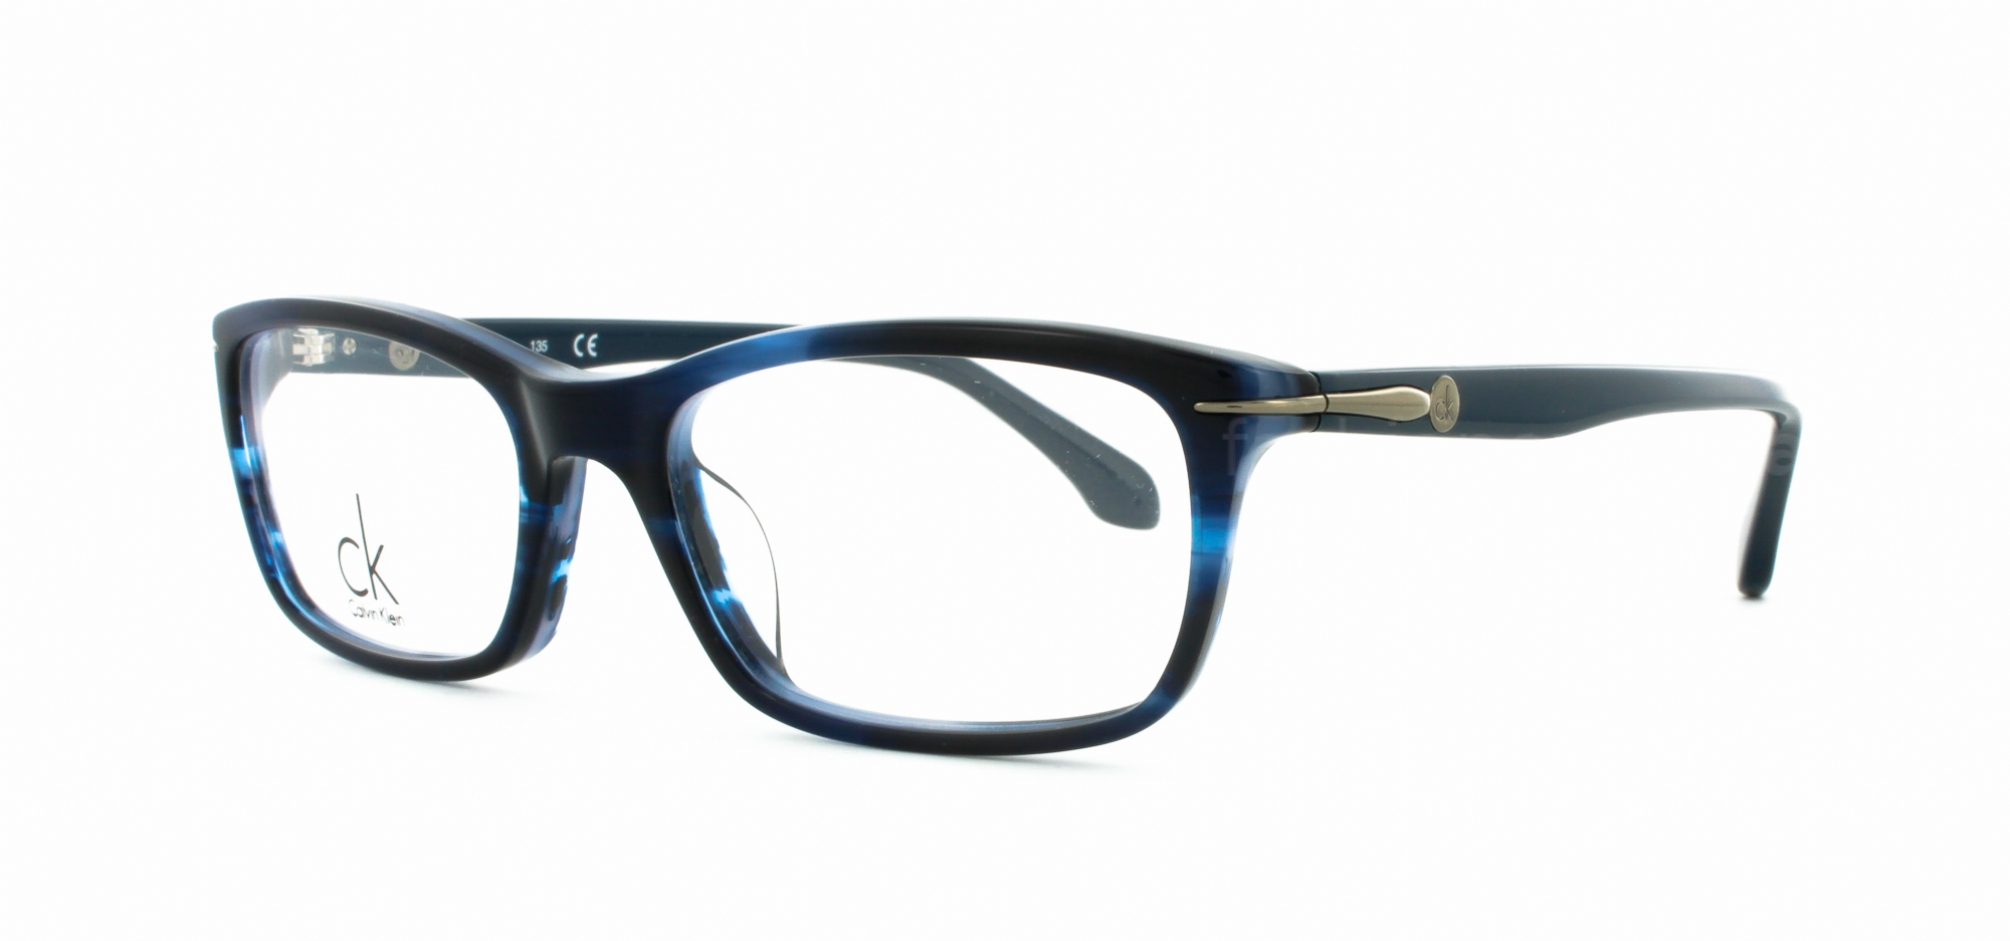 a817c9c826 Buy Calvin Klein Eyeglasses directly from eyeglassesdepot.com